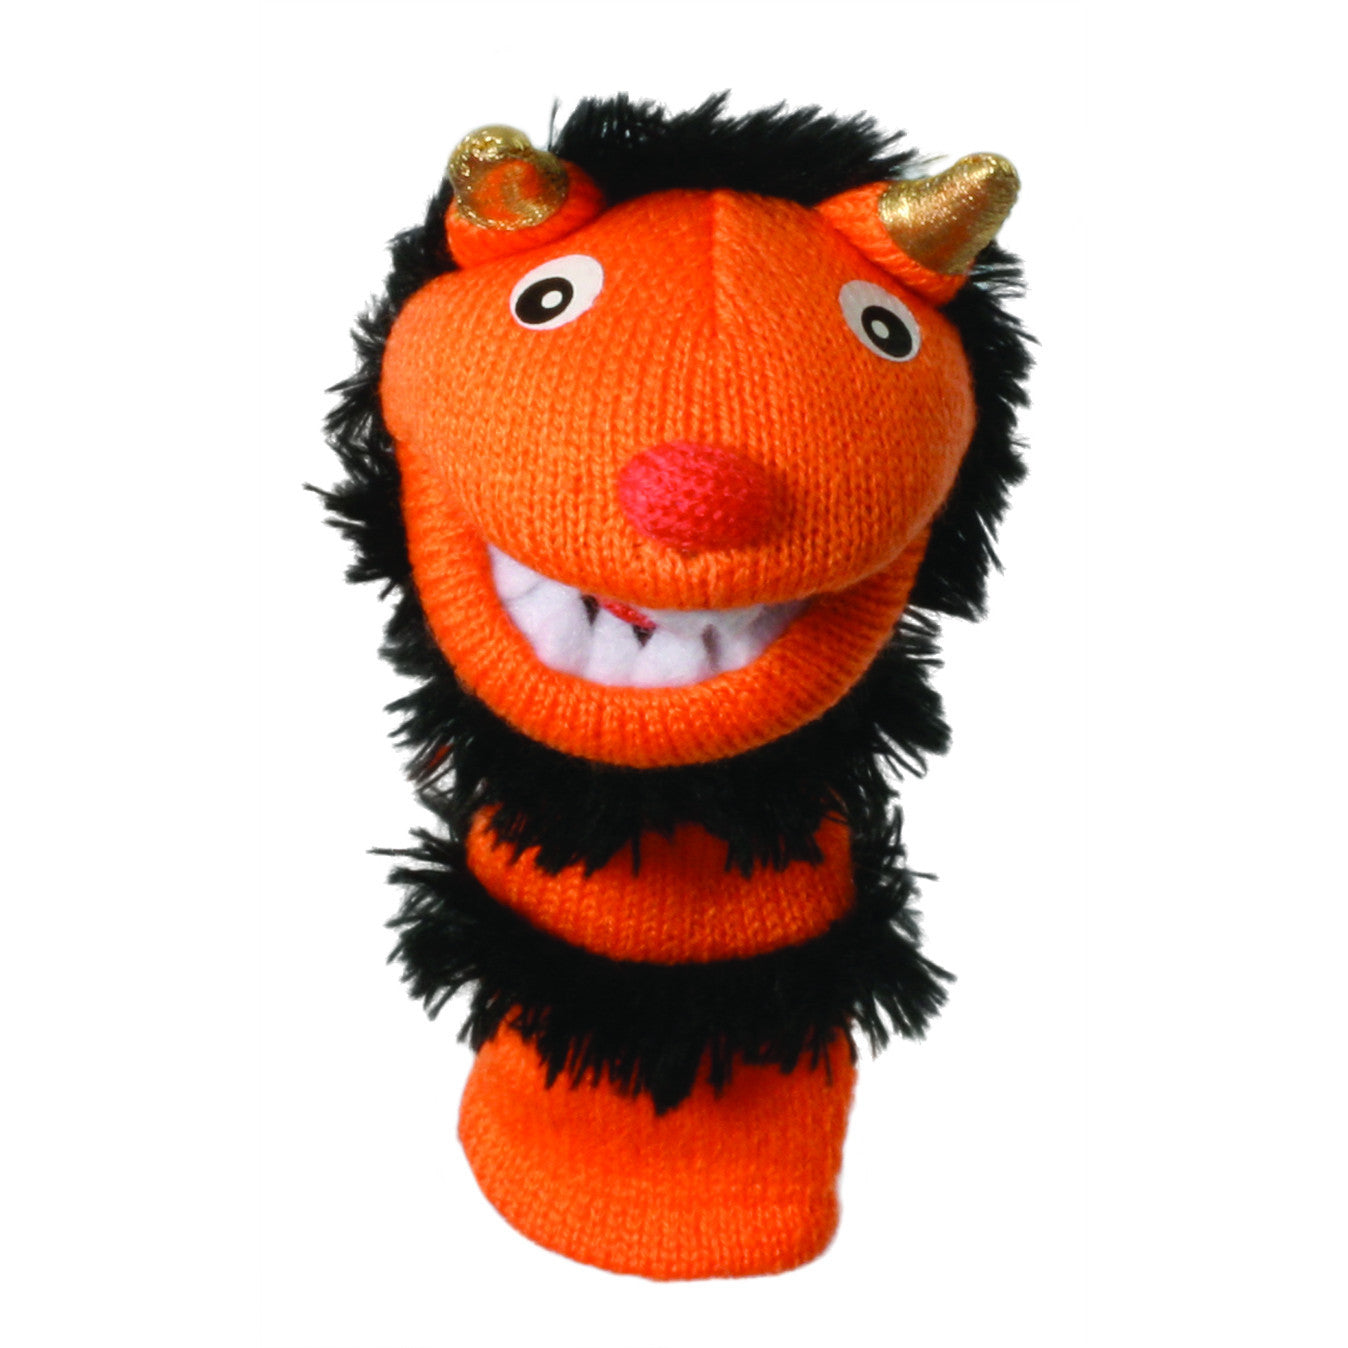 Mini Sockettes - Pumpkin Finger Puppet